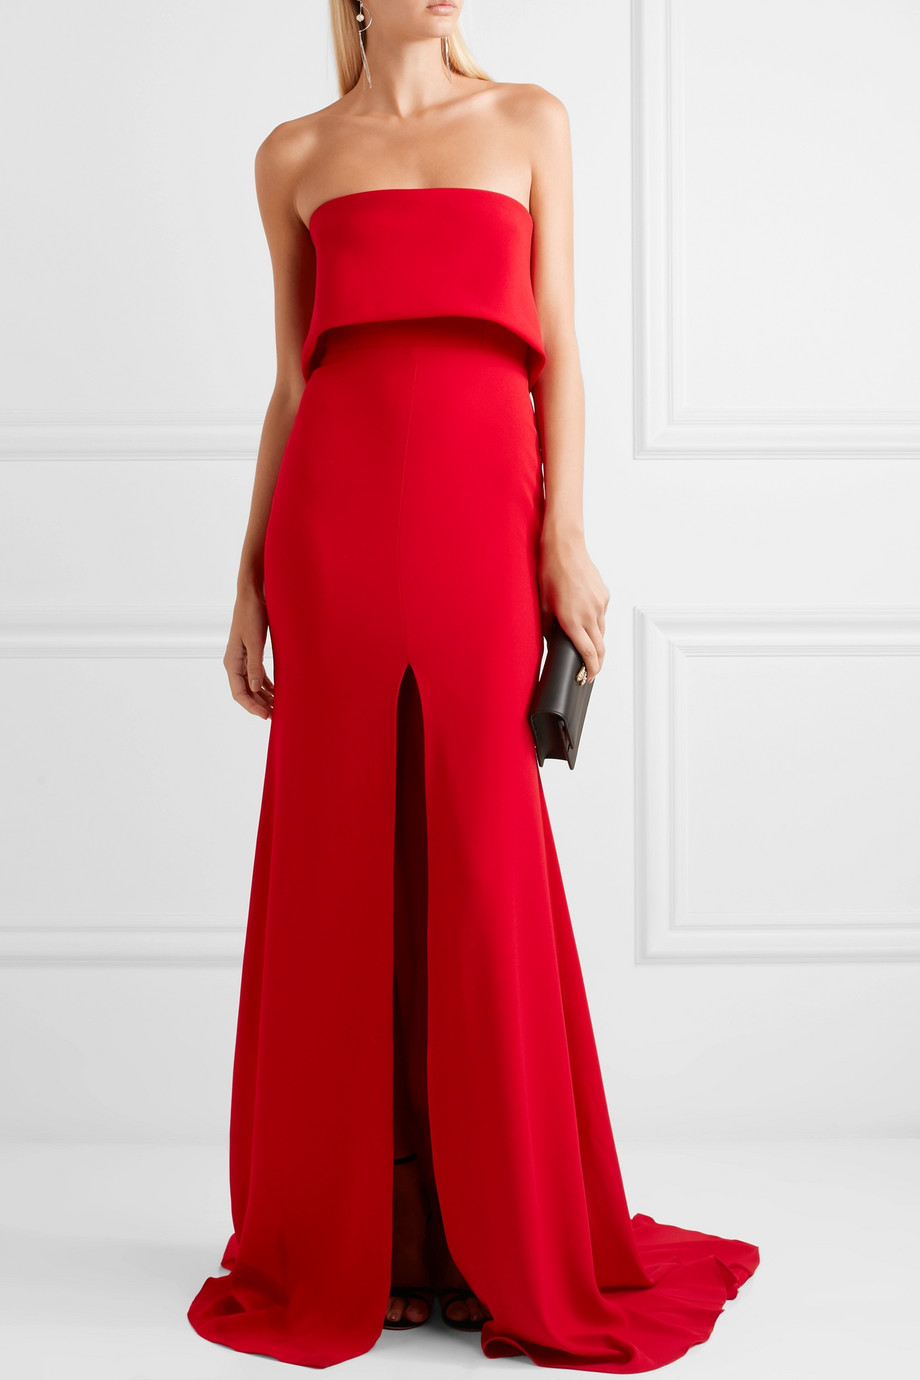 ALEX PERRY Strapless split-front crepe gown - what to wear to a new year's party